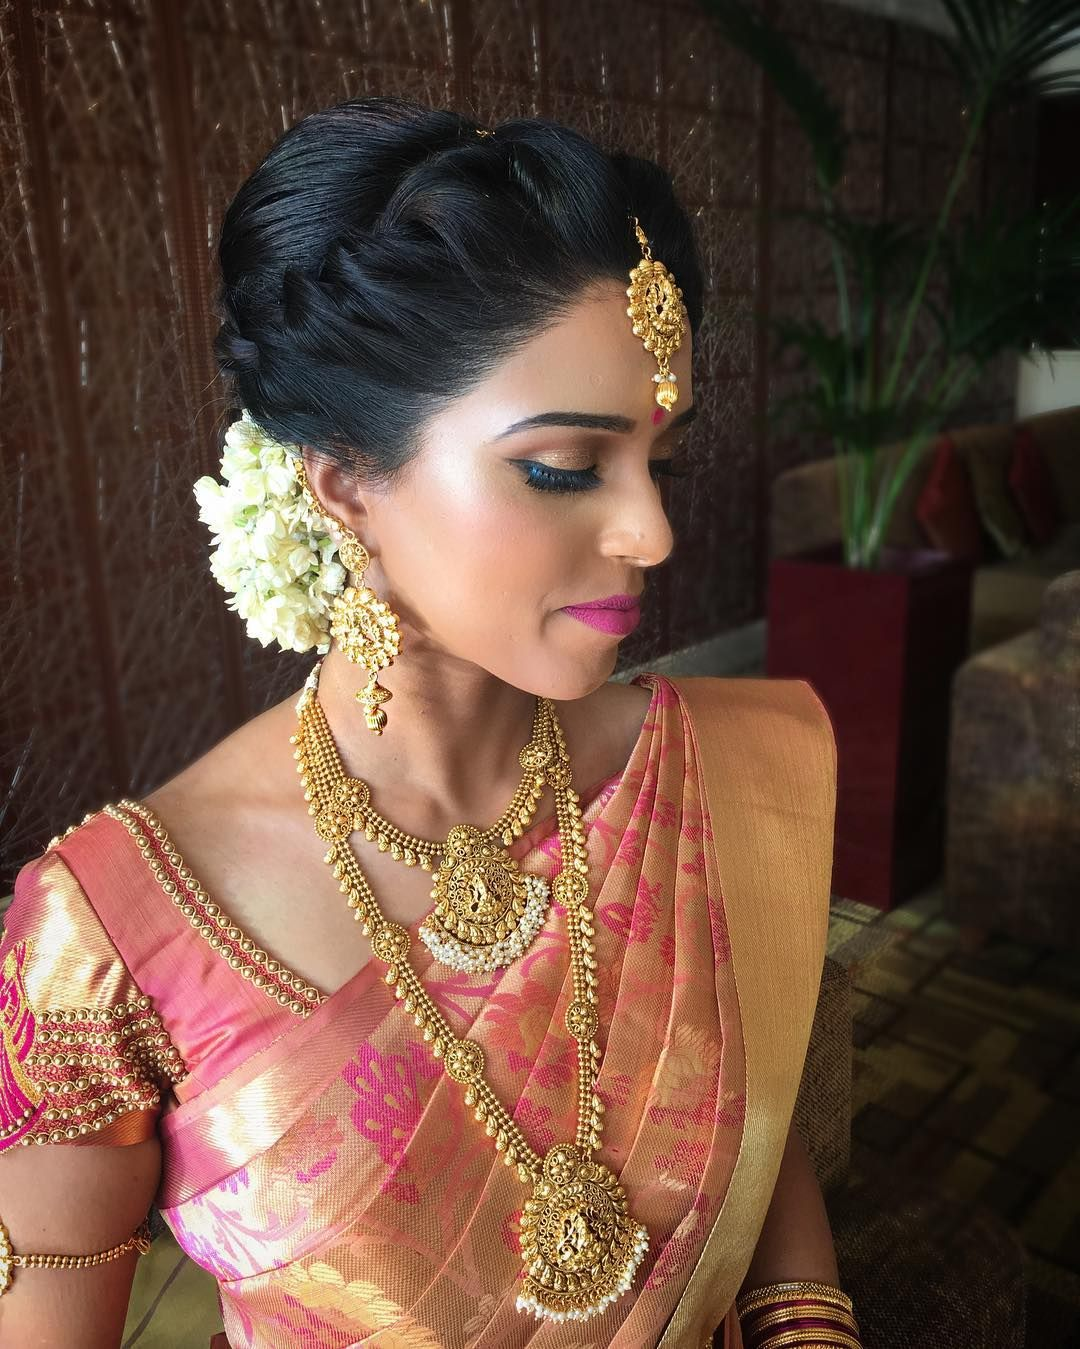 Shalomi Shalomimakeupandhair On Instagram Babitha Looking Radiant In Her Wedd Indian Bride Hairstyle South Indian Bride Hairstyle Indian Bridal Hairstyles